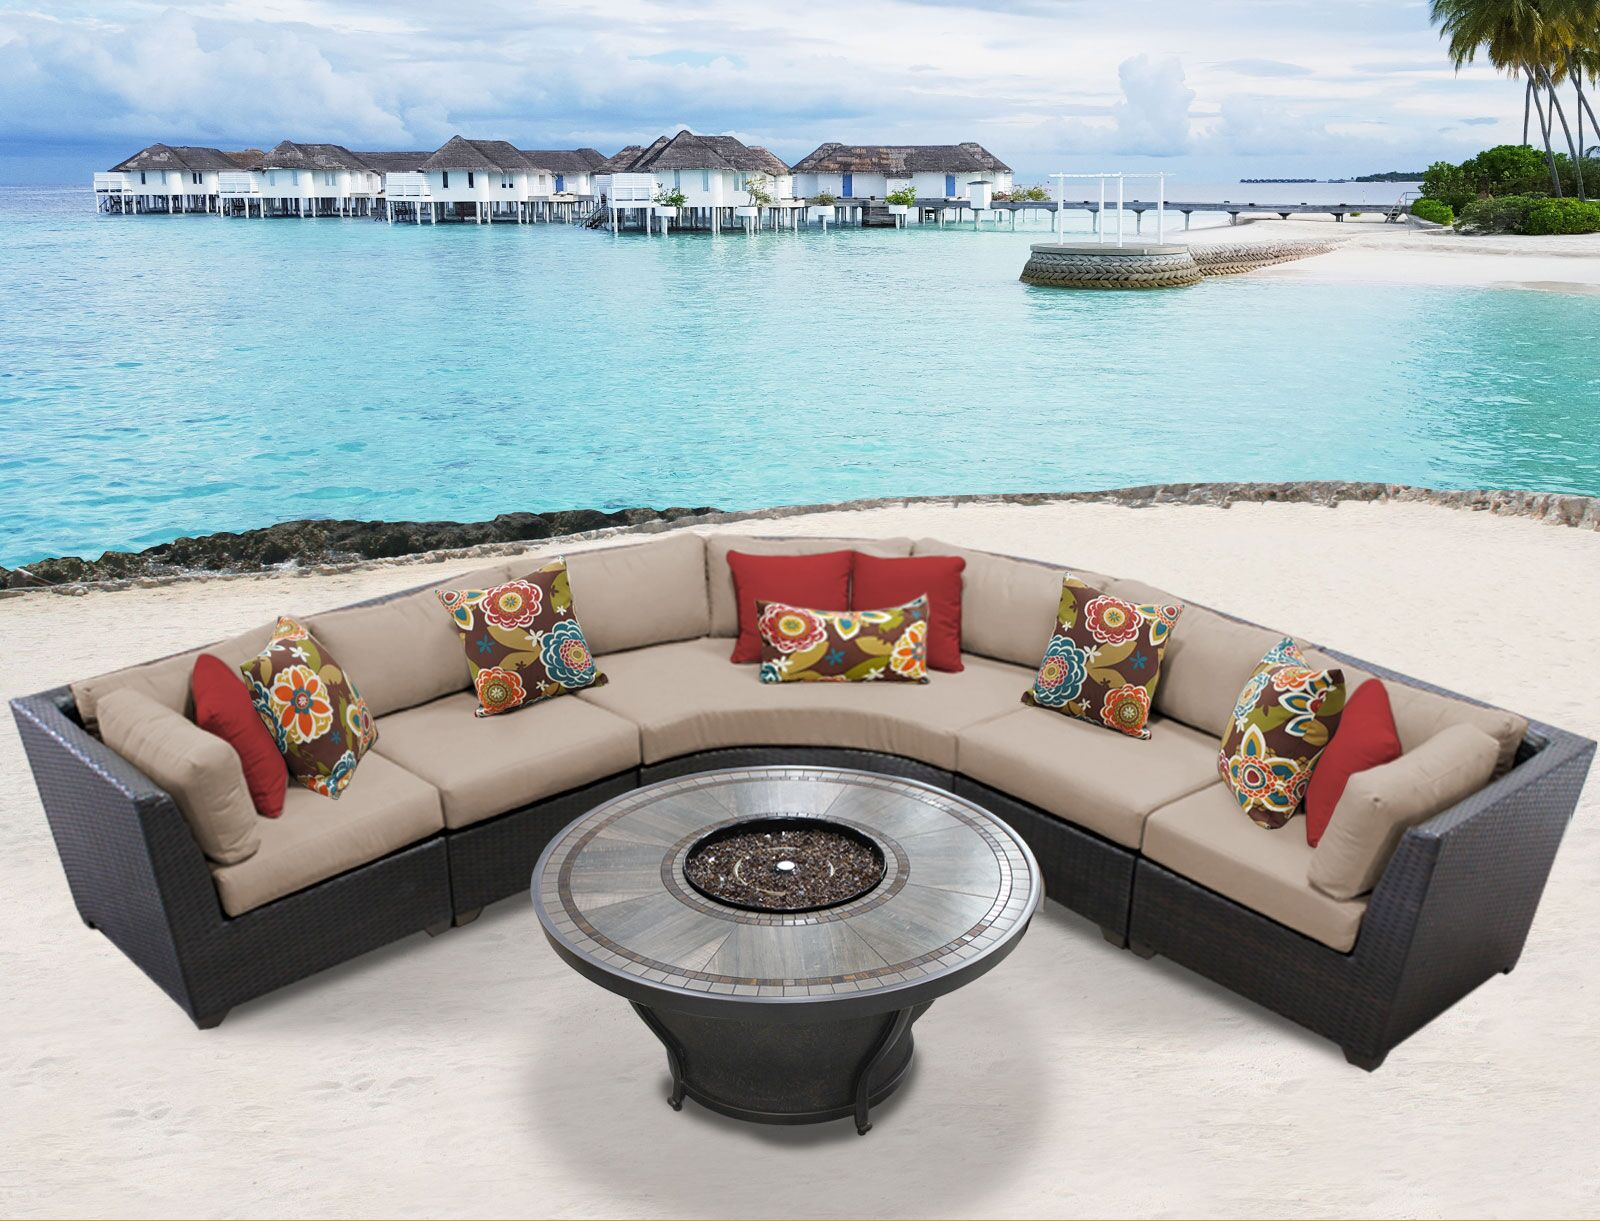 Barbados 6 Piece Sectional Set with Cushions Cushion Color: Wheat